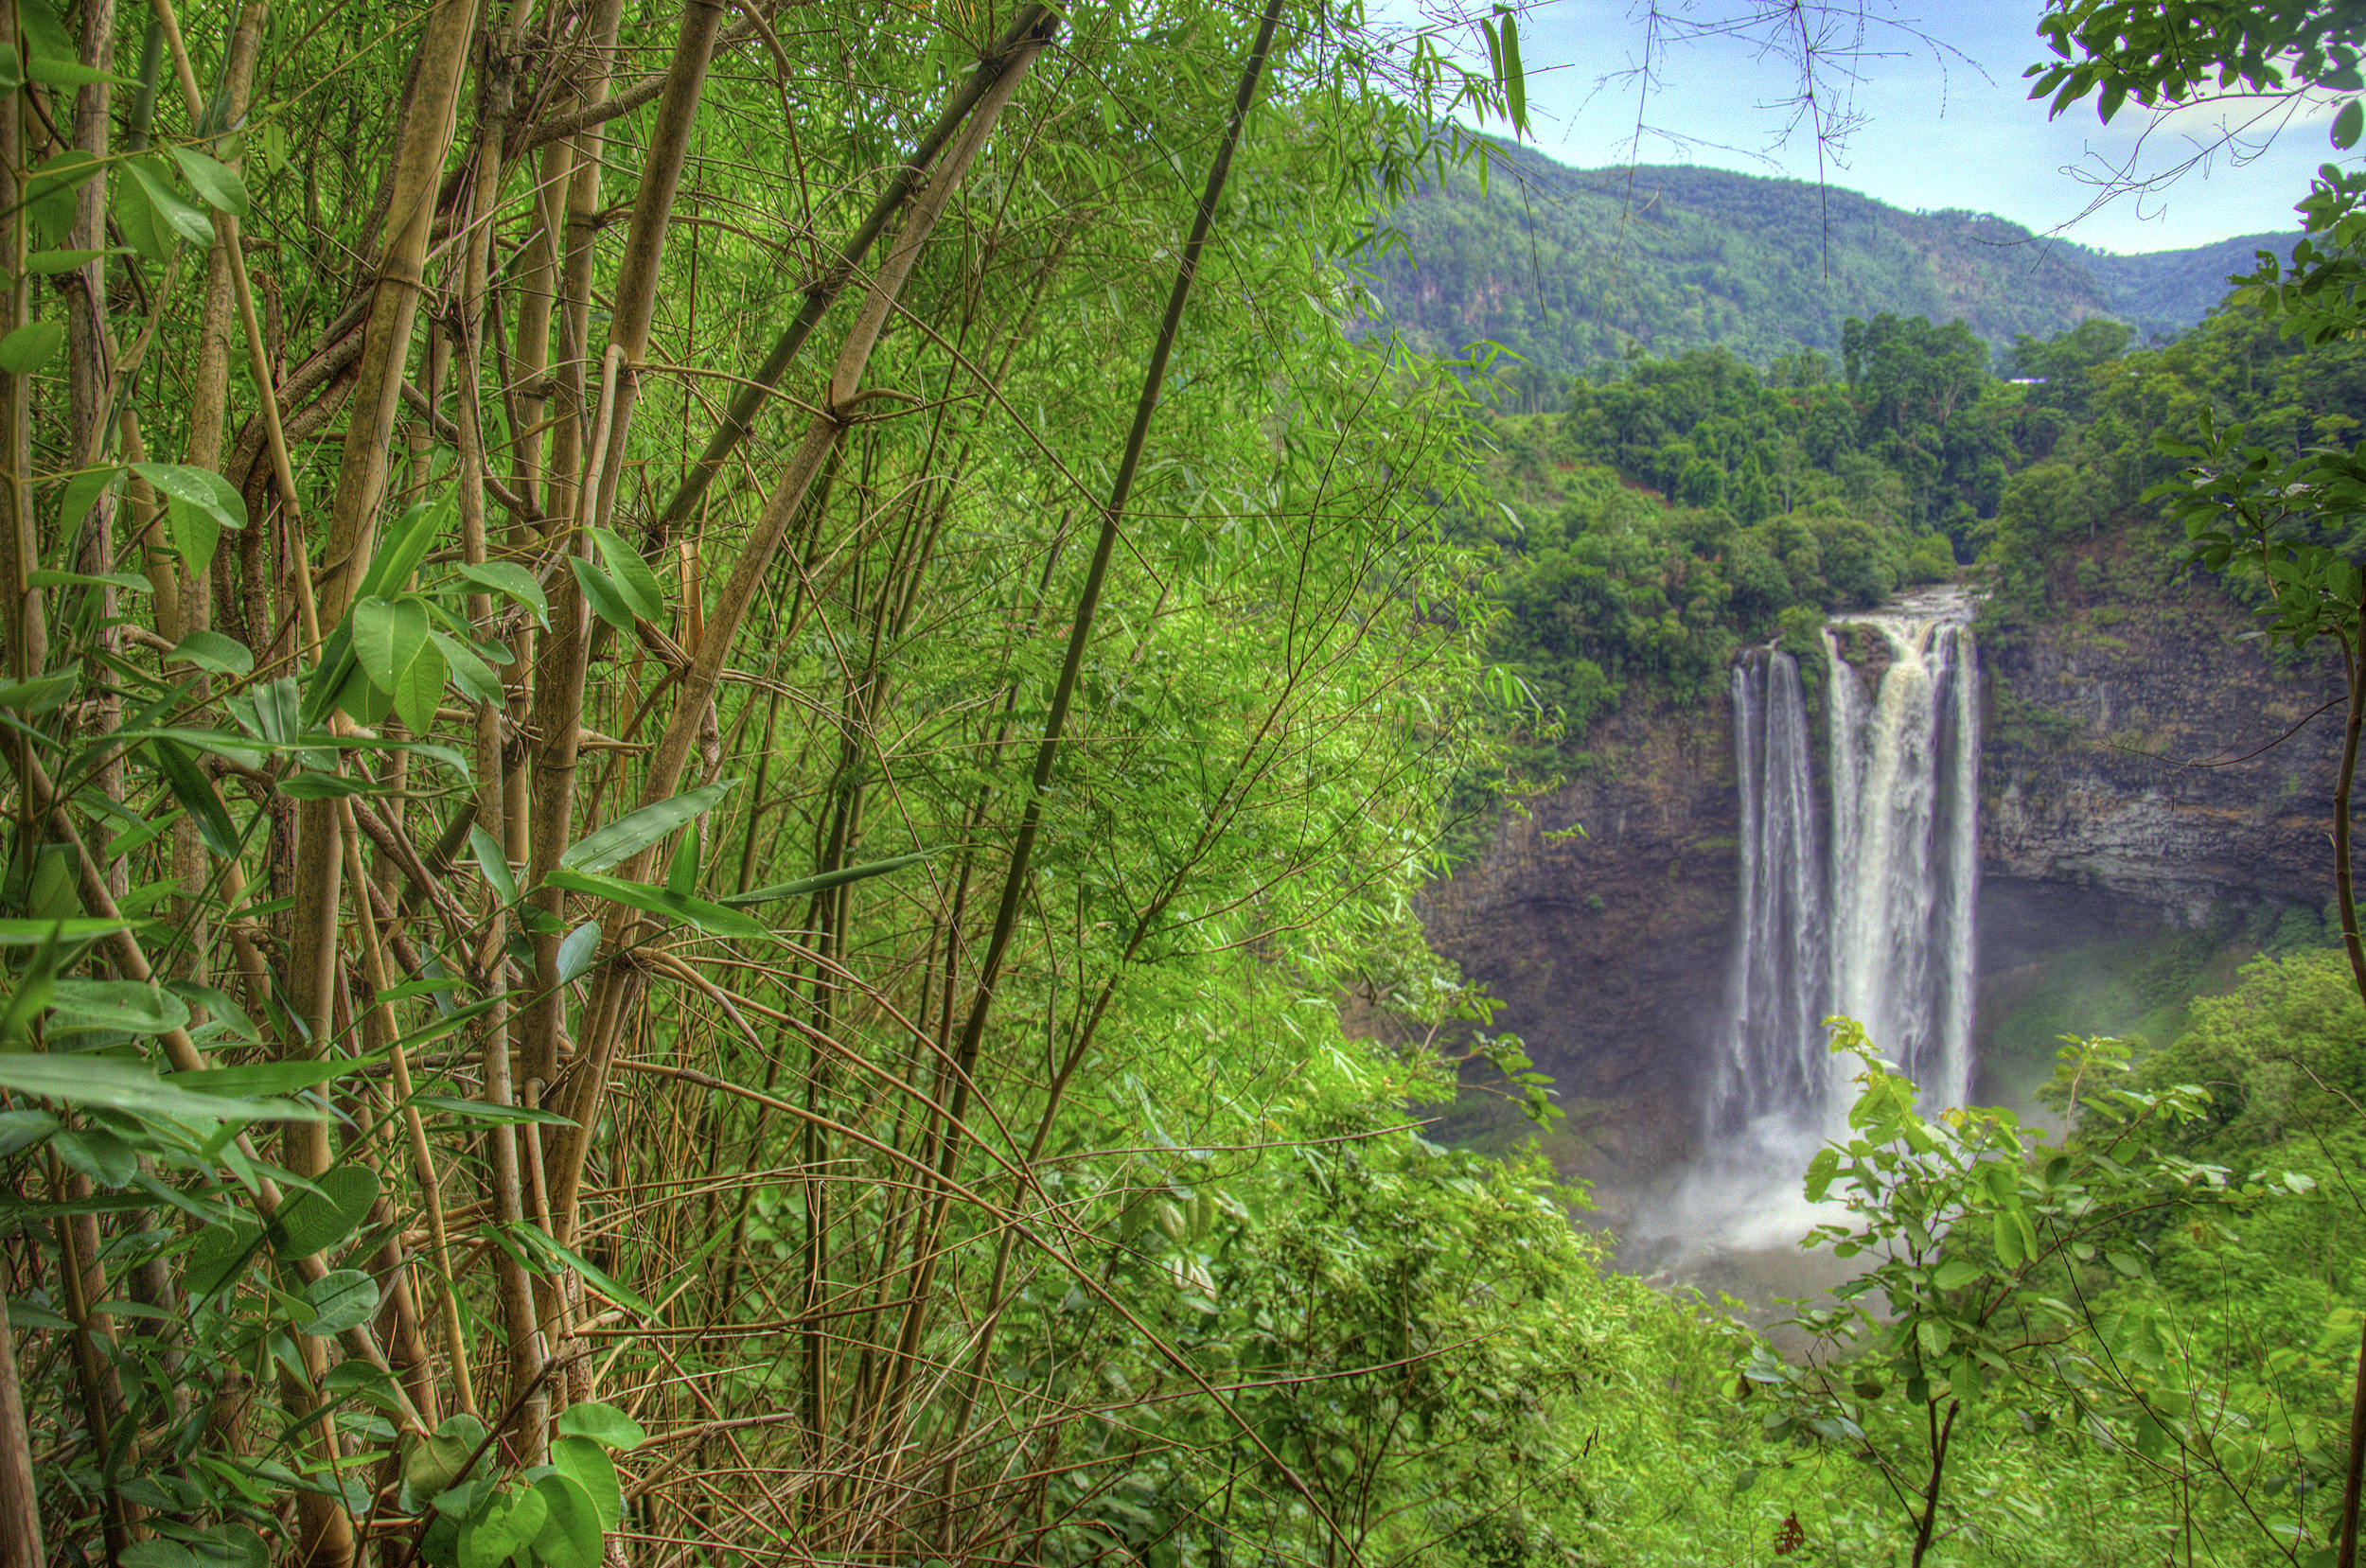 The highilght of the bolaven plateau - Tat Katamtok Waterfall